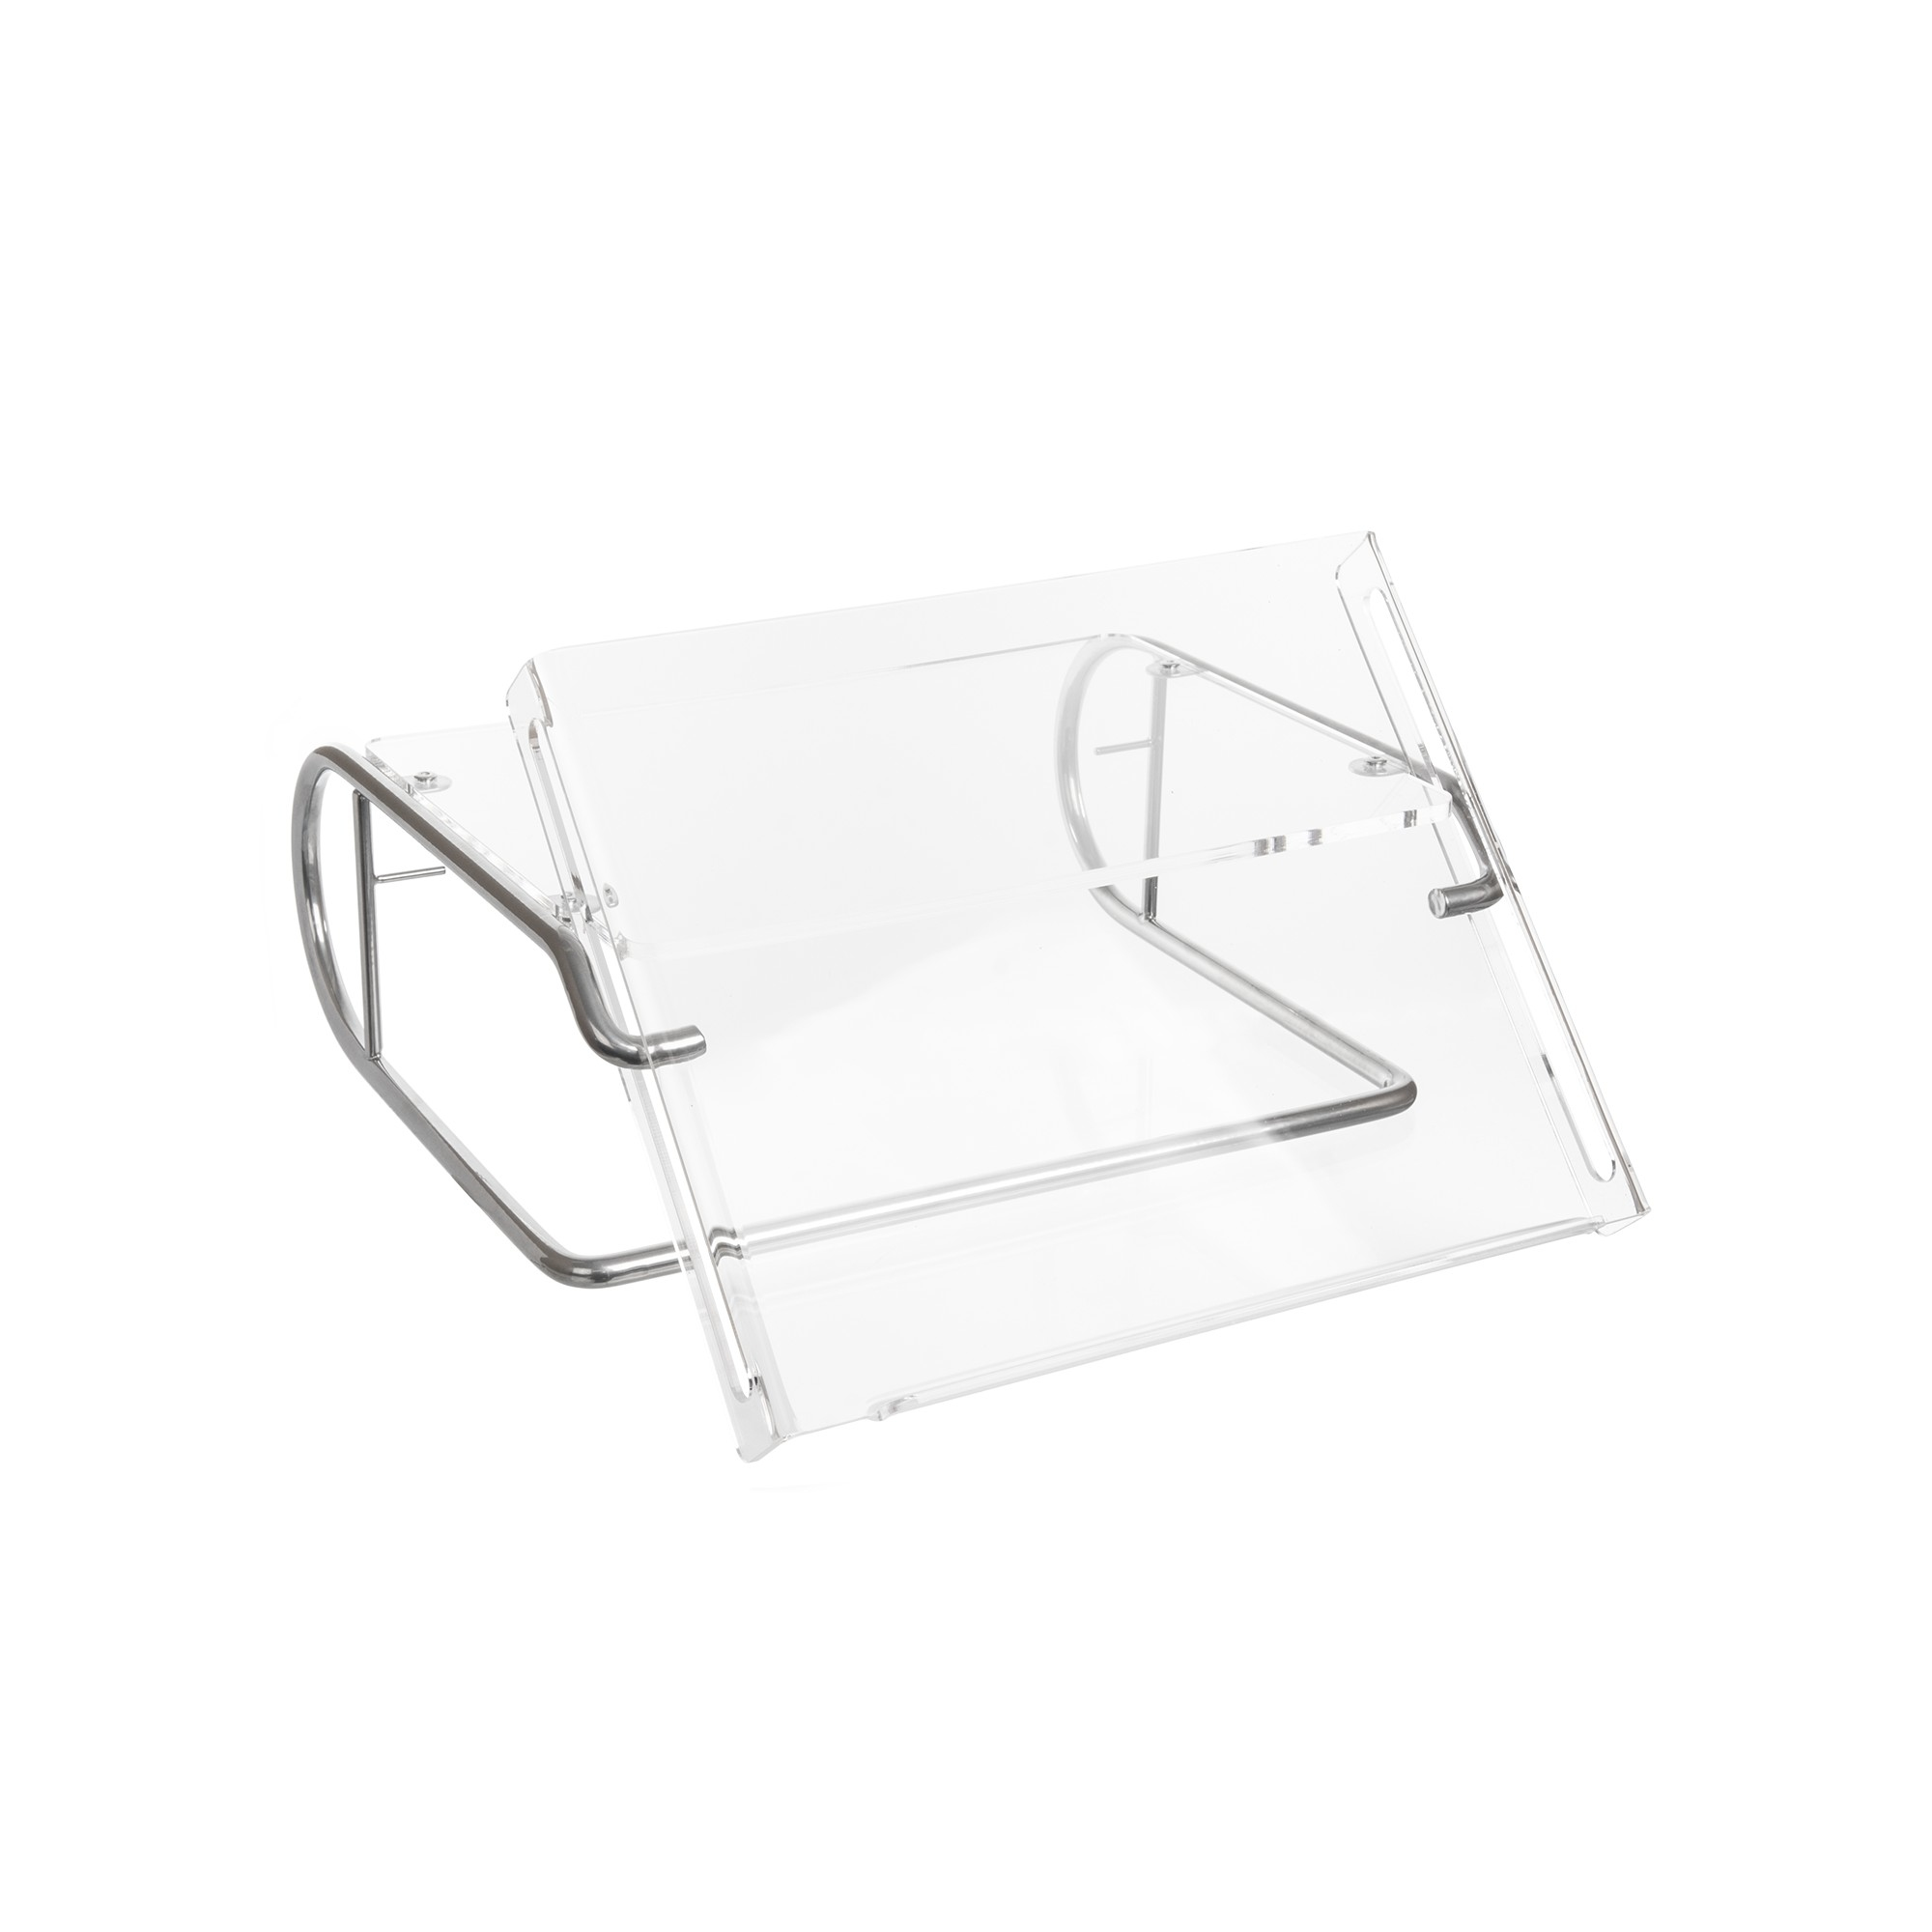 R-GO TOOLS RGOSC034 STEEL DOCUMENT MONITOR STAND, HOLDER, SILVER